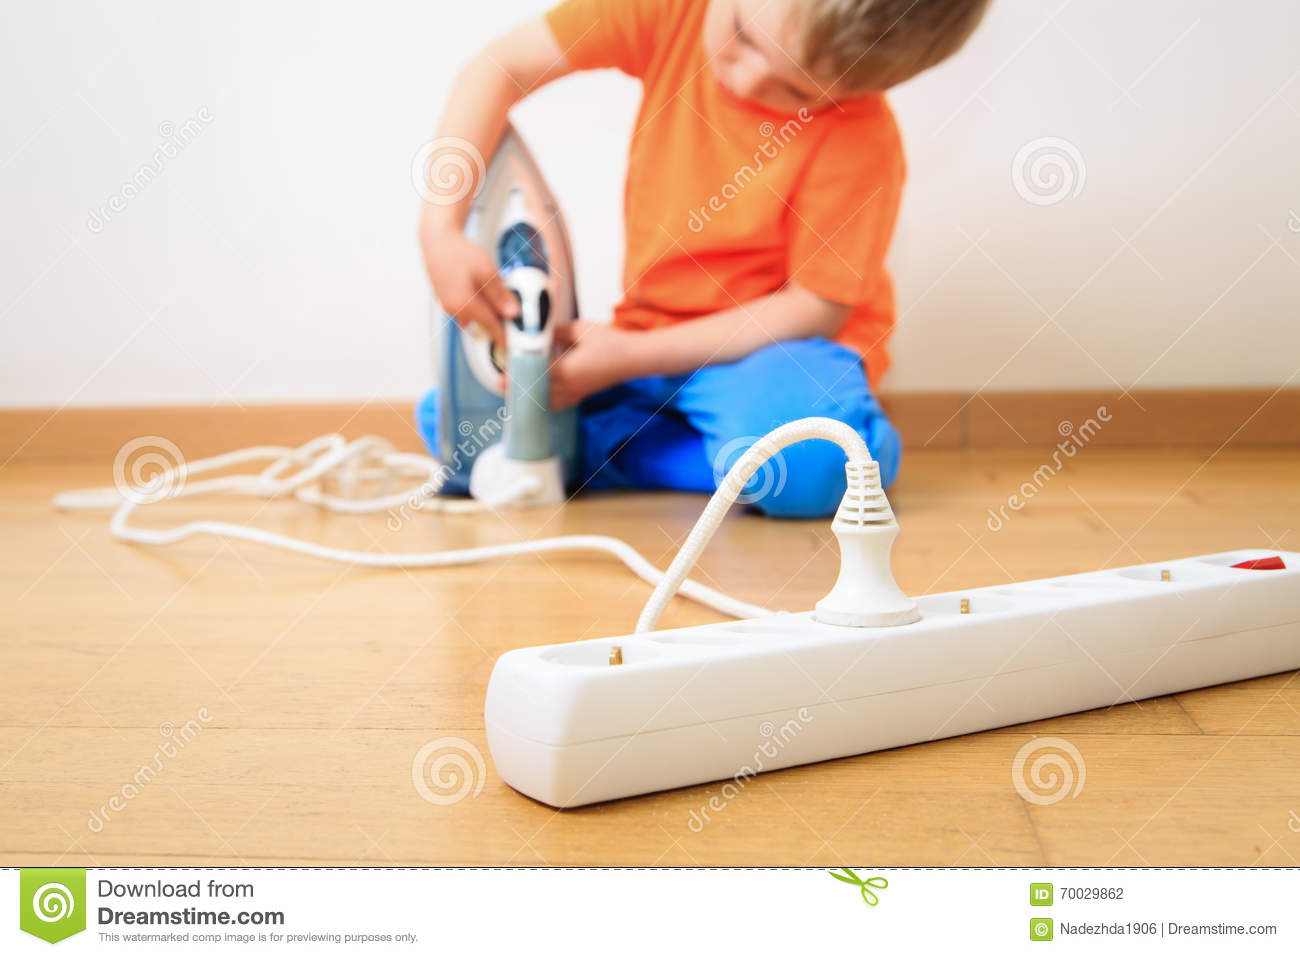 Child Playing With Electricity Kids Safety Stock Photo Image Of For